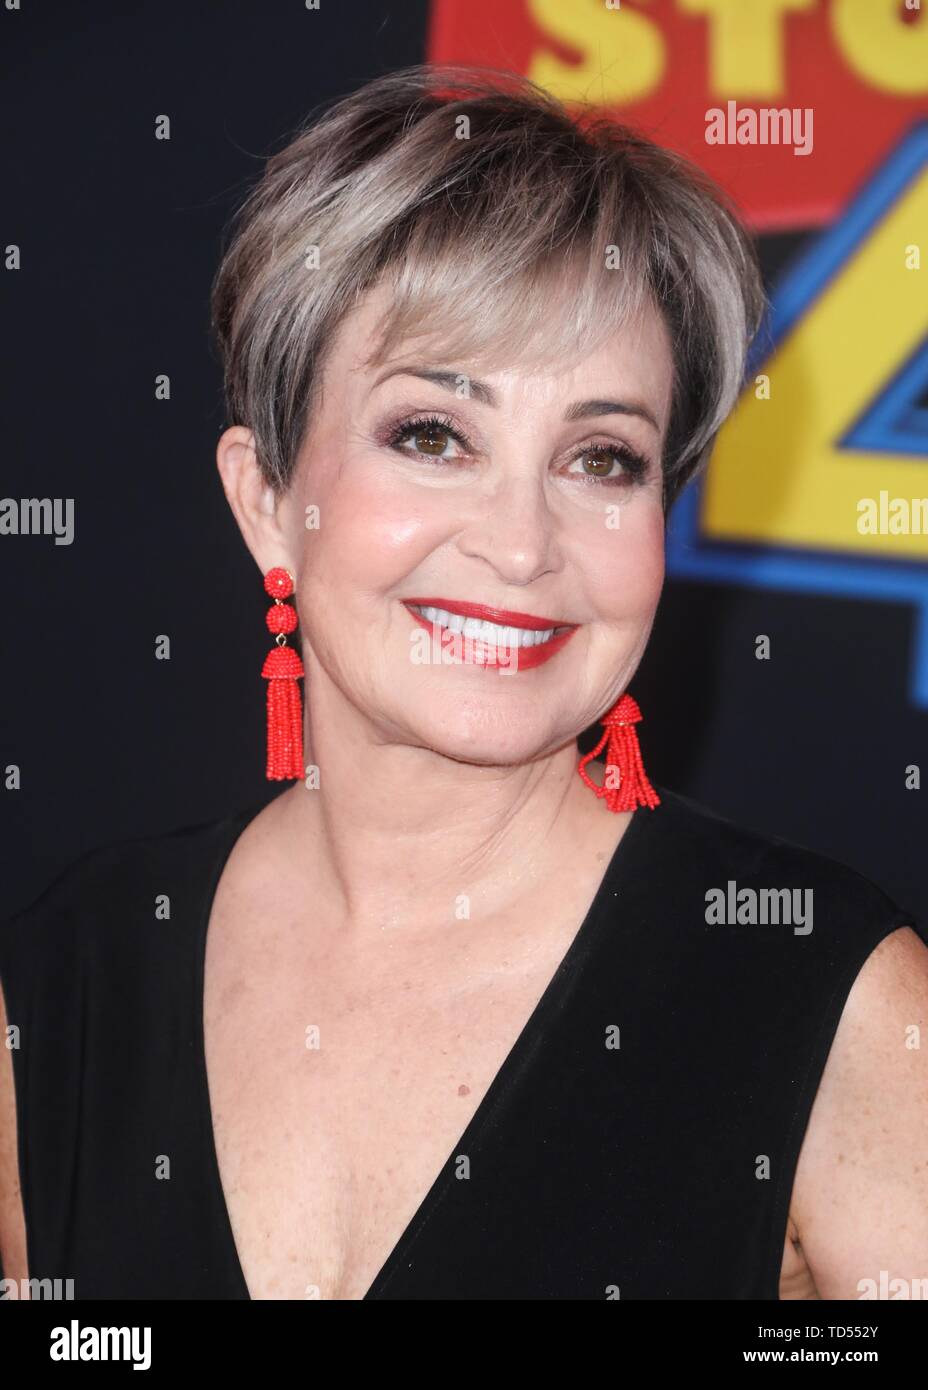 Hollywood, USA. 11th June, 2019. HOLLYWOOD, LOS ANGELES, CALIFORNIA, USA - JUNE 11: Actress Annie Potts arrives at the Los Angeles Premiere Of Disney And Pixar's 'Toy Story 4' held at the El Capitan Theatre on June 11, 2019 in Hollywood, Los Angeles, California, USA. (Photo by David Acosta/Image Press Agency) Credit: Image Press Agency/Alamy Live News - Stock Image